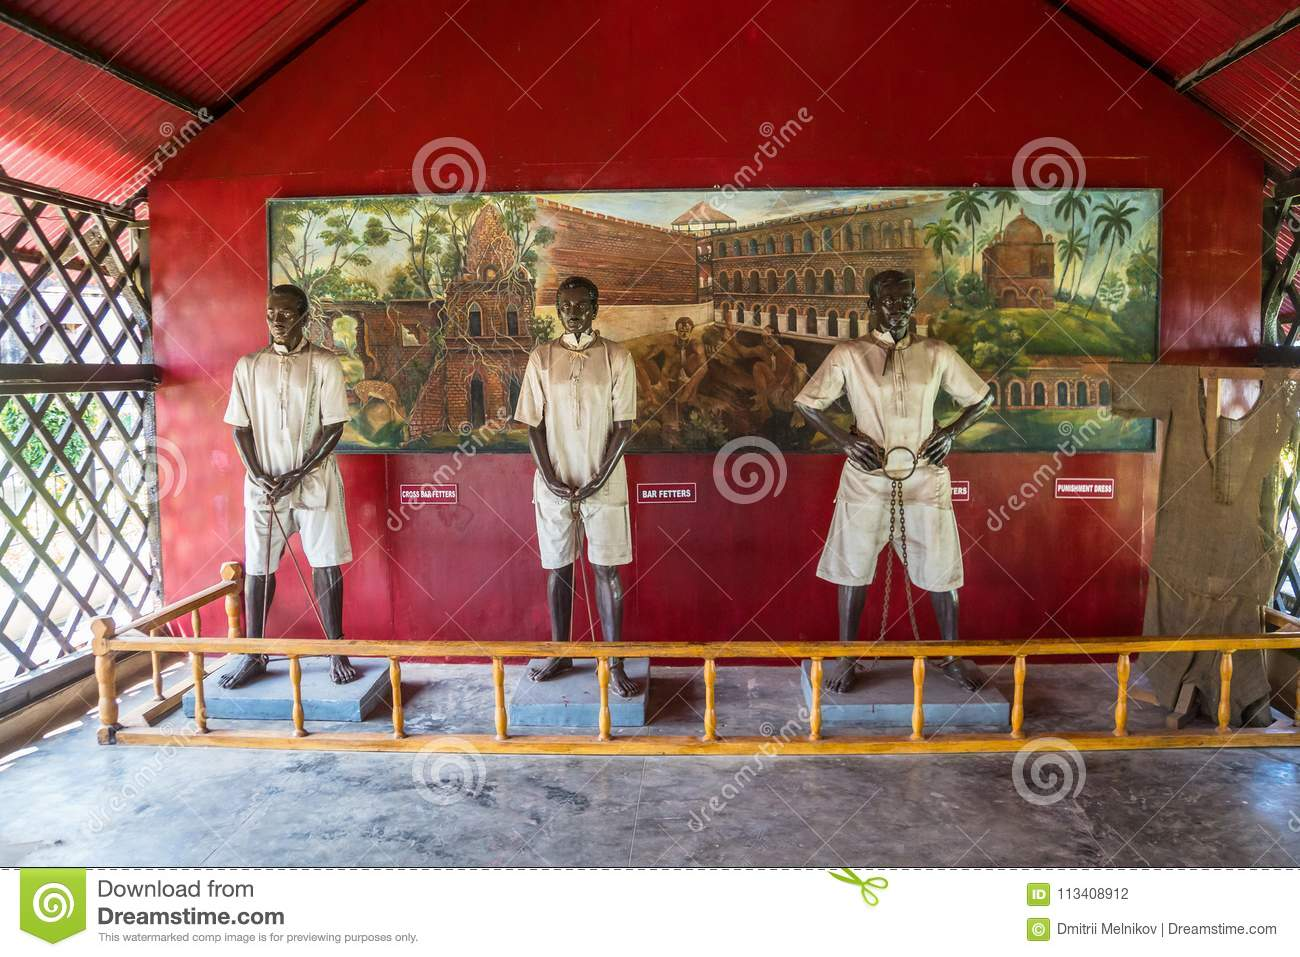 Statue of an Indian political prisoner in the Cellular Jail